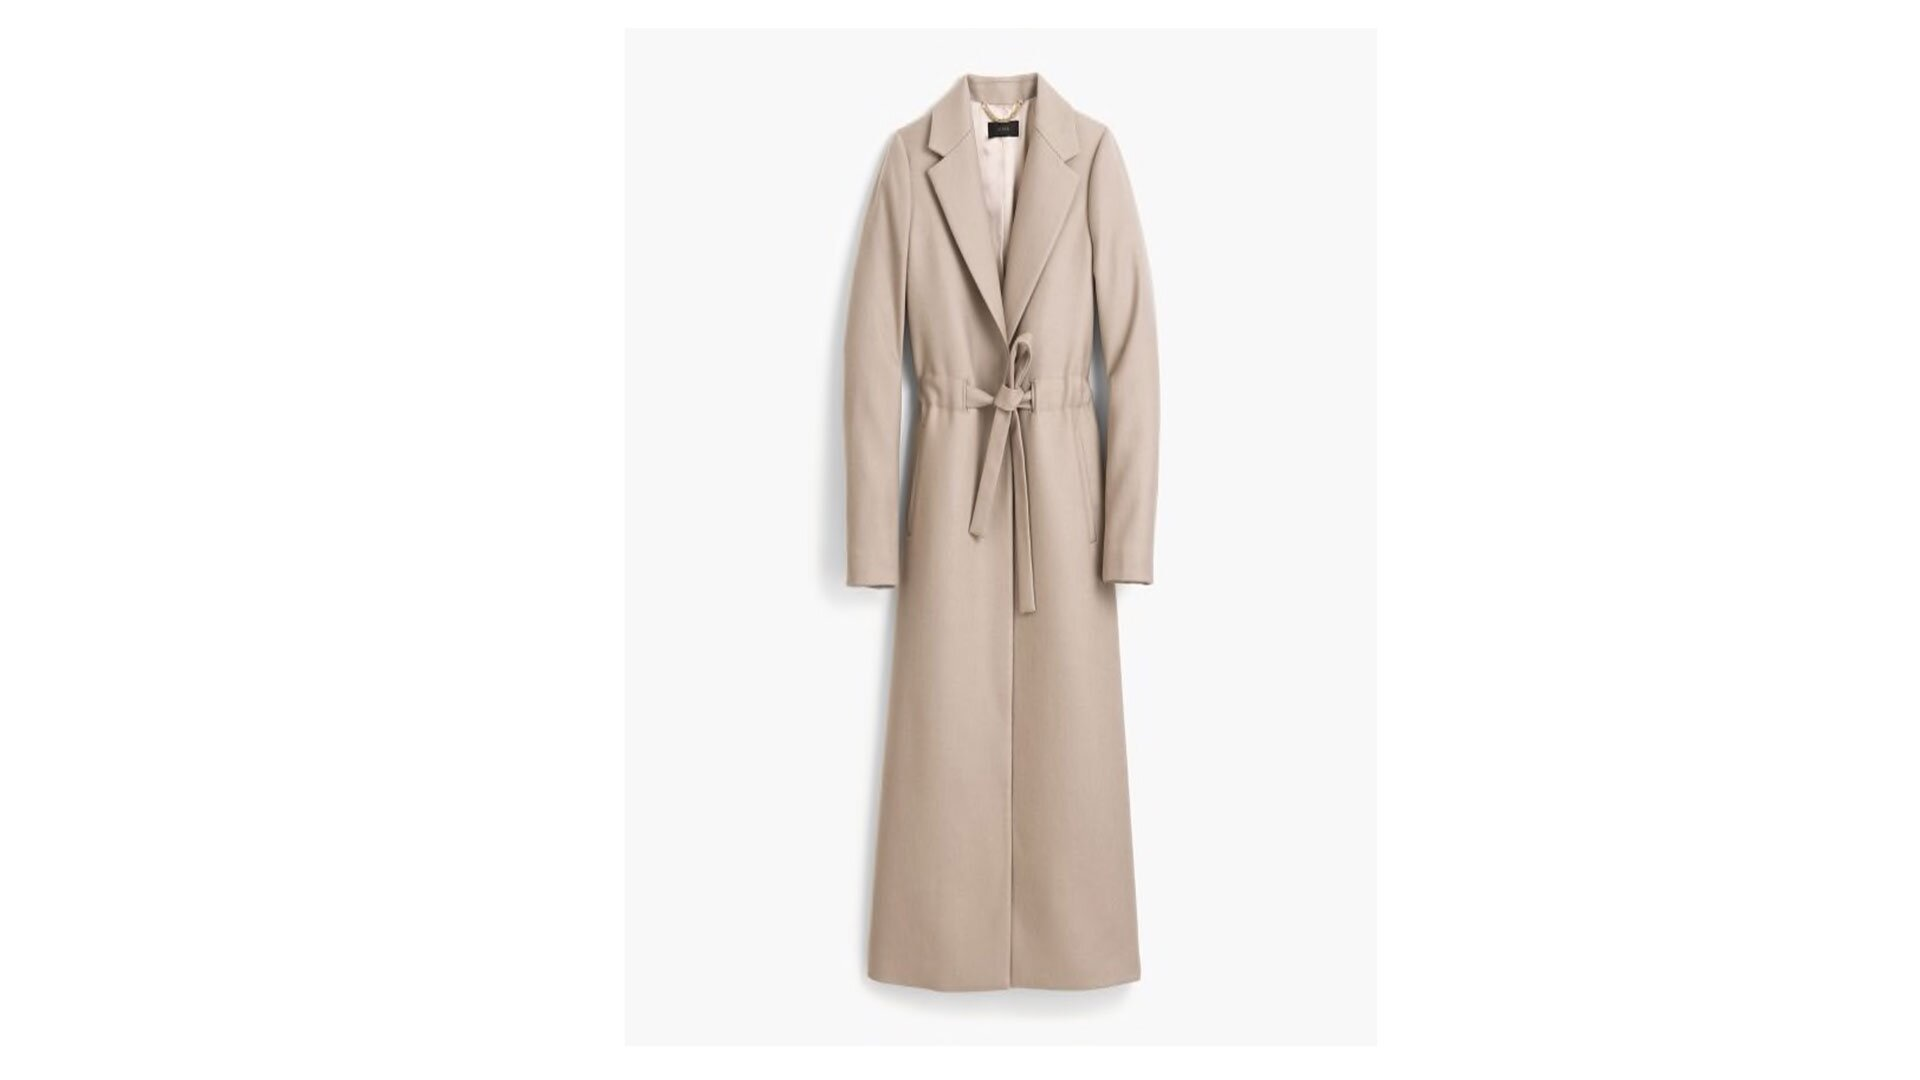 762db33a617a2 5 Coats Inspired by Meghan Markle's Engagement Look That Are On Sale Now